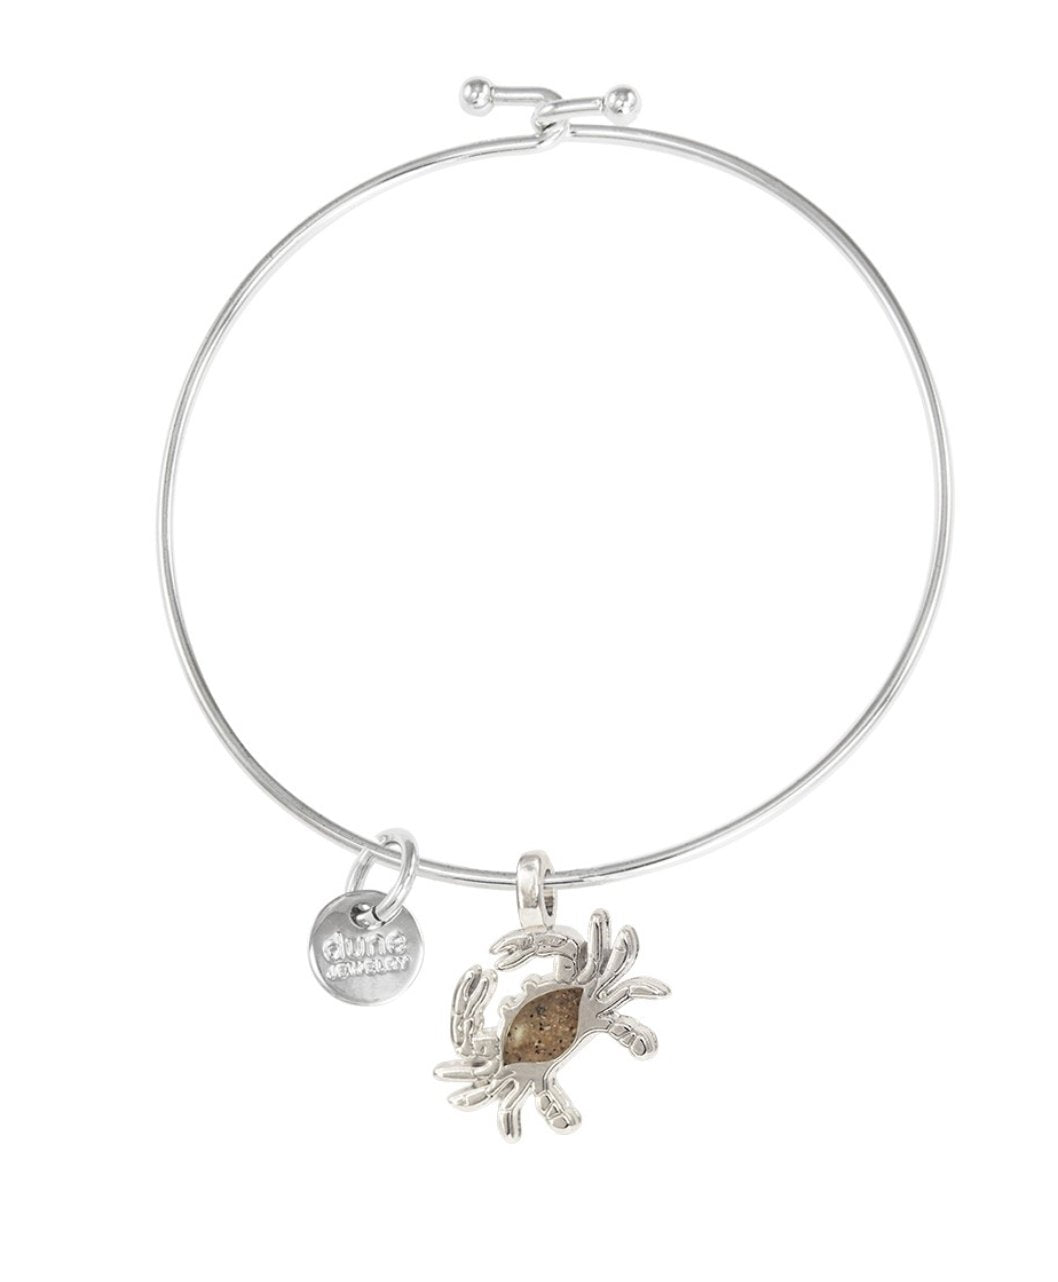 SBANG12 BANGLE CRAB - Molly's! A Chic and Unique Boutique